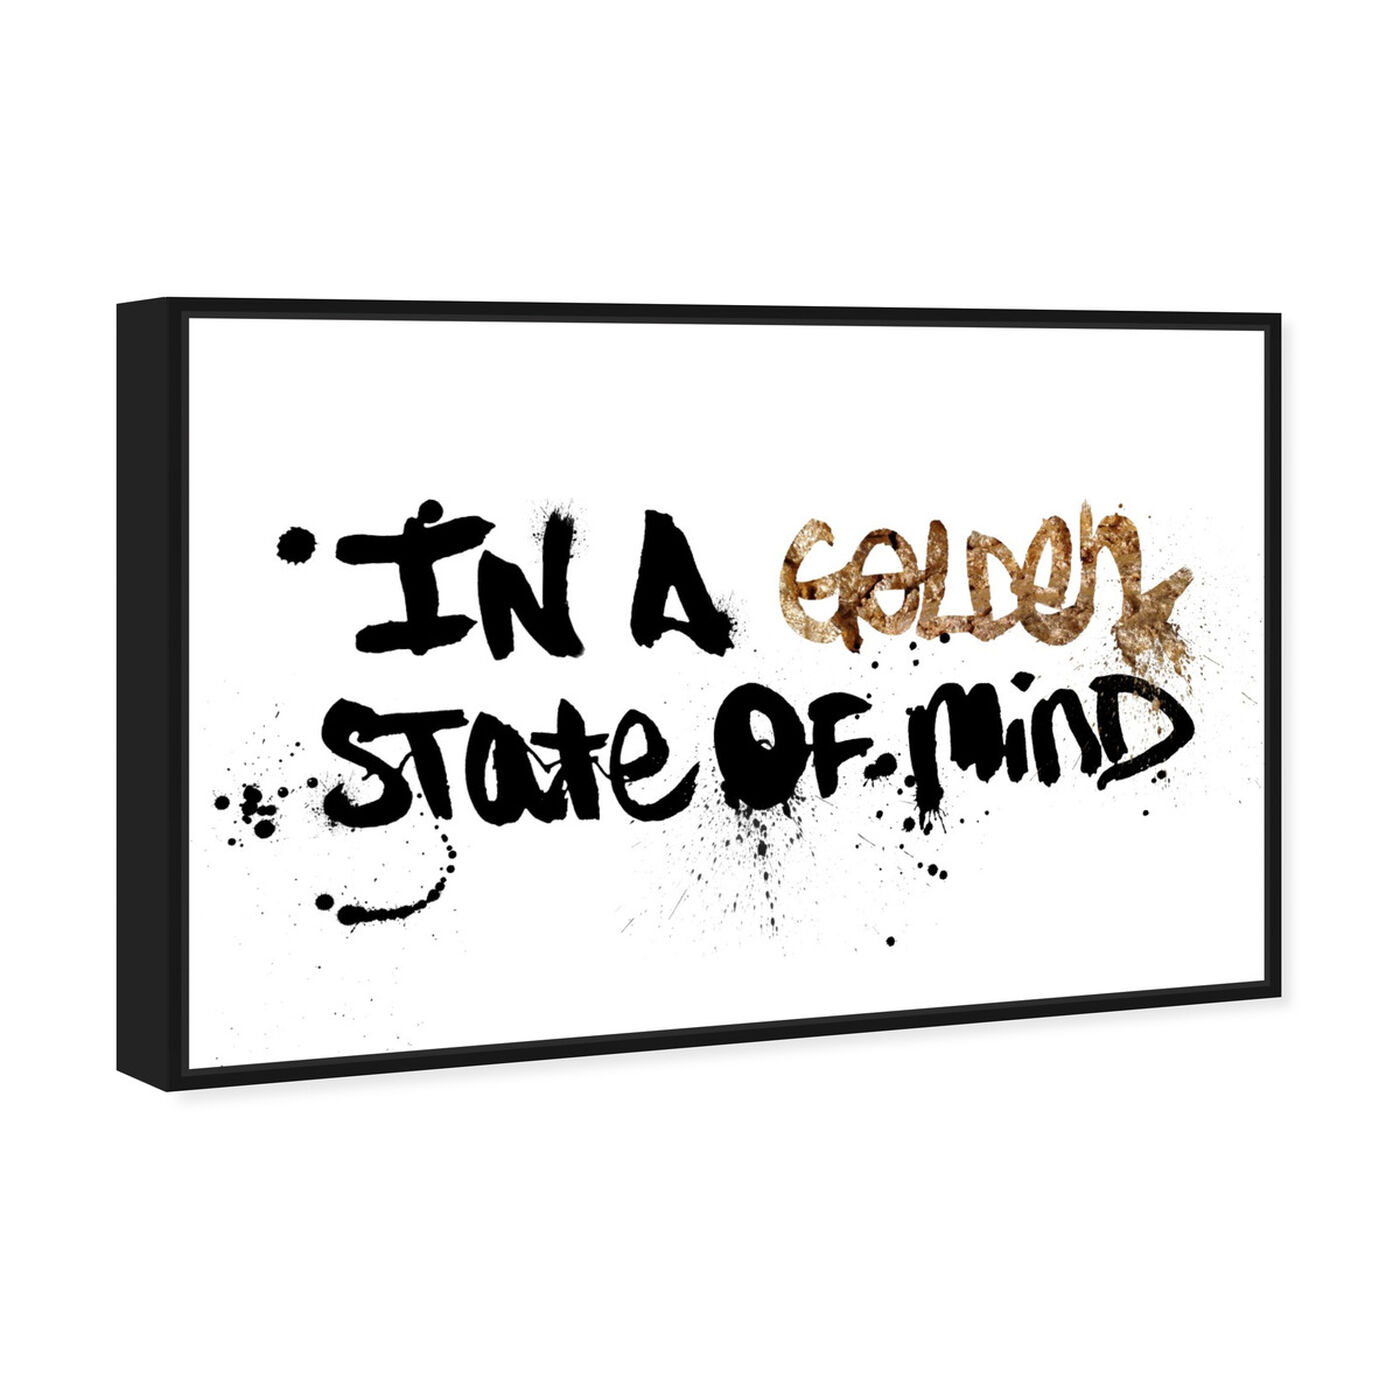 Angled view of State of Mind featuring typography and quotes and motivational quotes and sayings art.